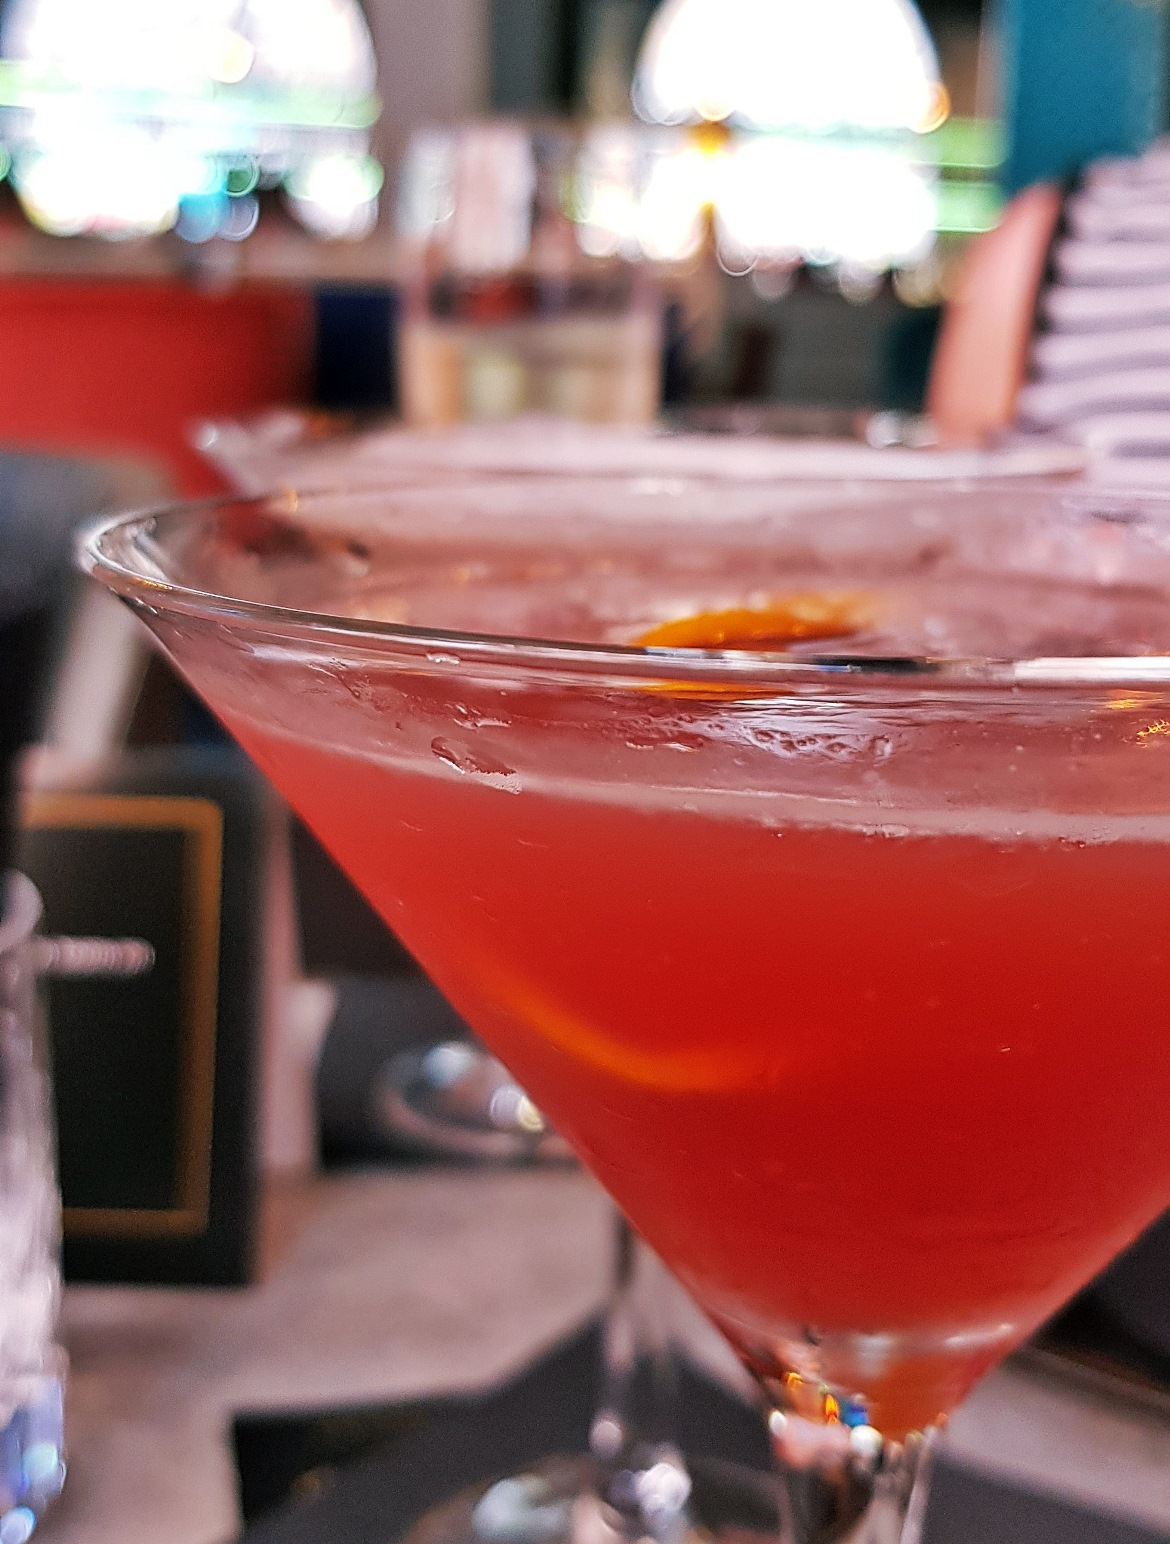 Blood Orange and Vanilla Martini and French Martini - Bottomless Brunch at Dirty Martini, review by BeckyBecky Blogs